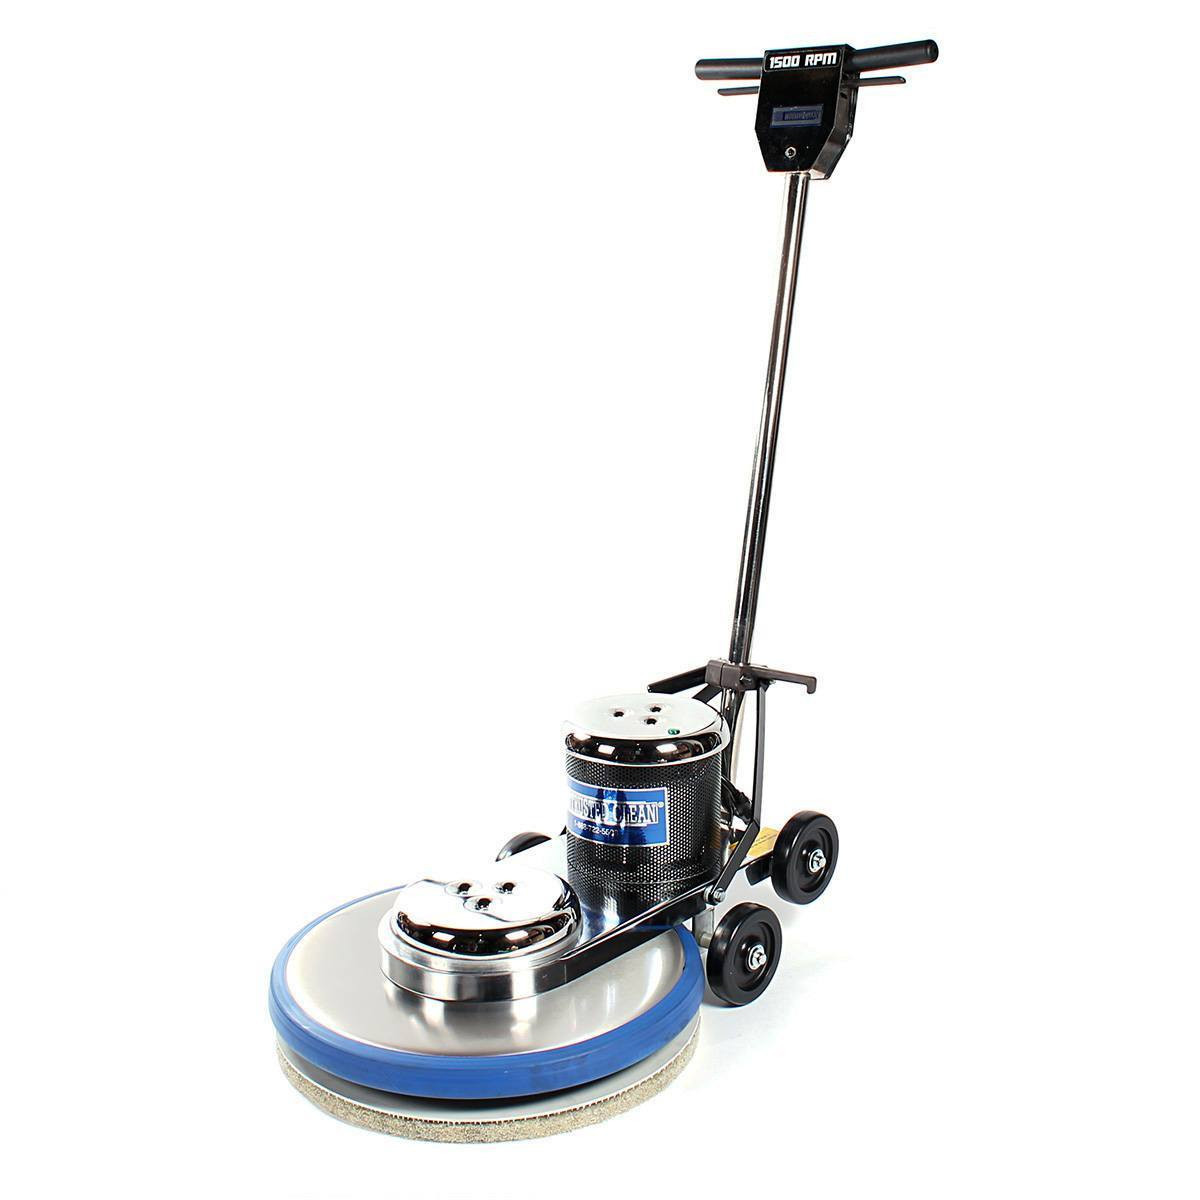 20 Trusted Clean Polished Steel Body Floor Burnisher